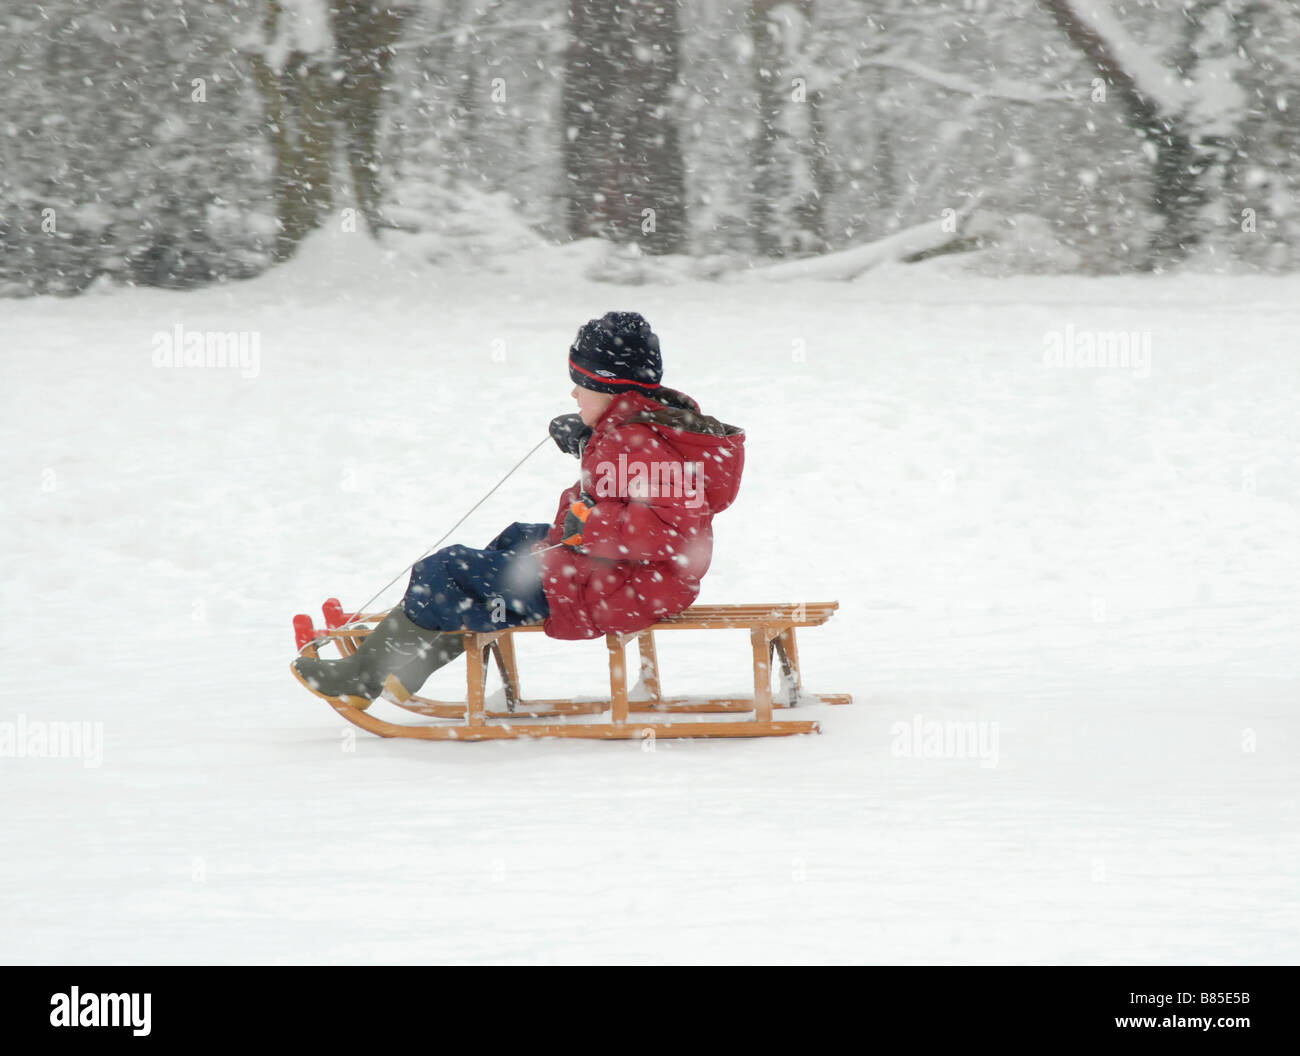 Winter fun: Young boy on a sledge in the snow, Cheam, south London, Surrey, England - Stock Image